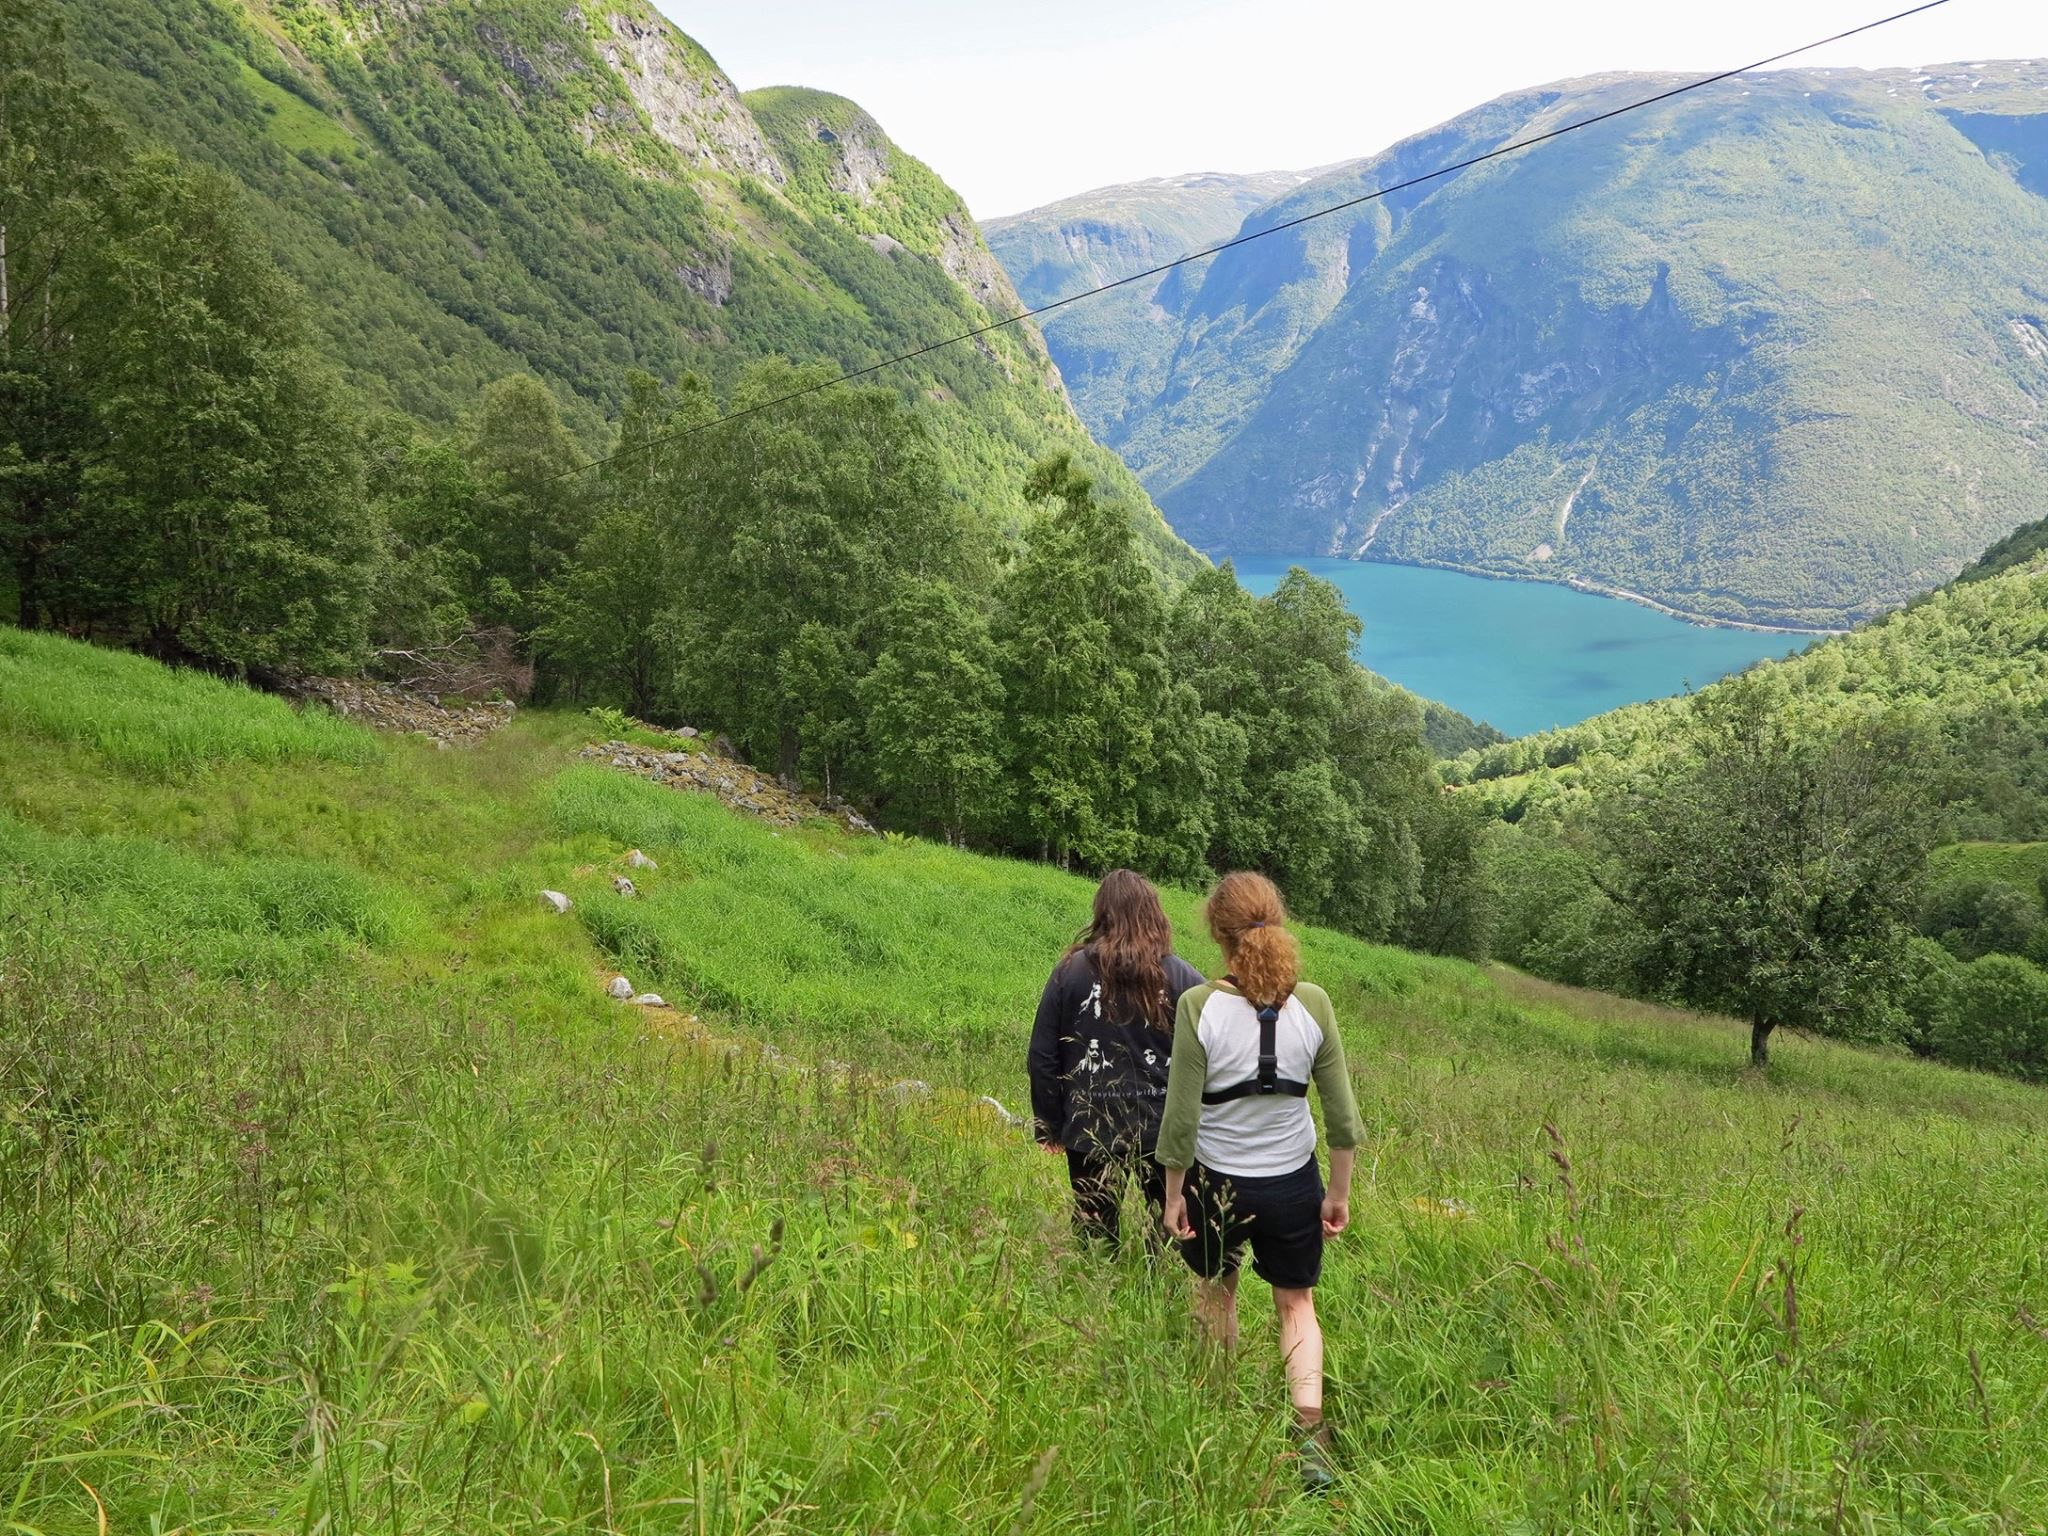 FROM FJORD TO MOUNTAIN